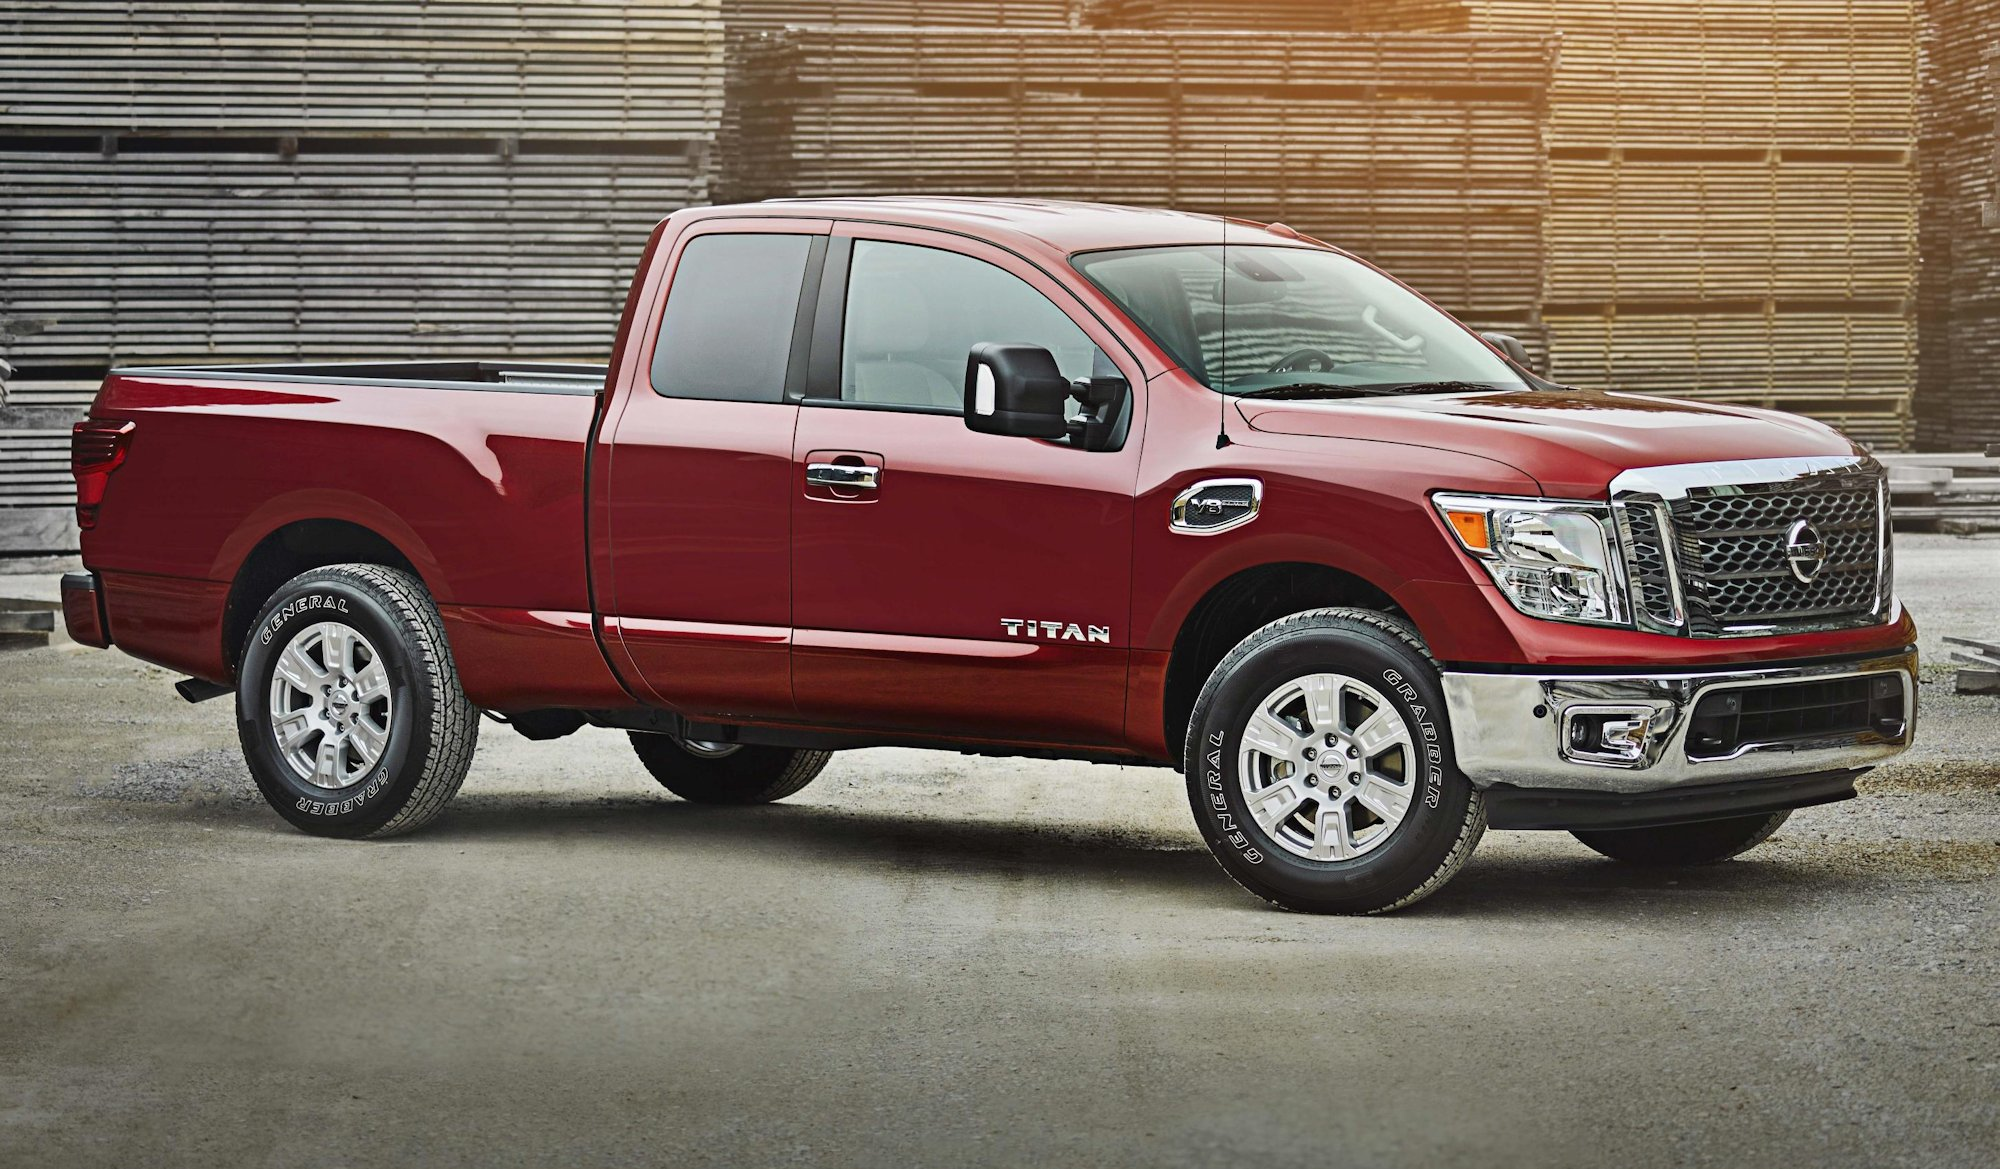 nissan adds new king cab body style to titan models. Black Bedroom Furniture Sets. Home Design Ideas